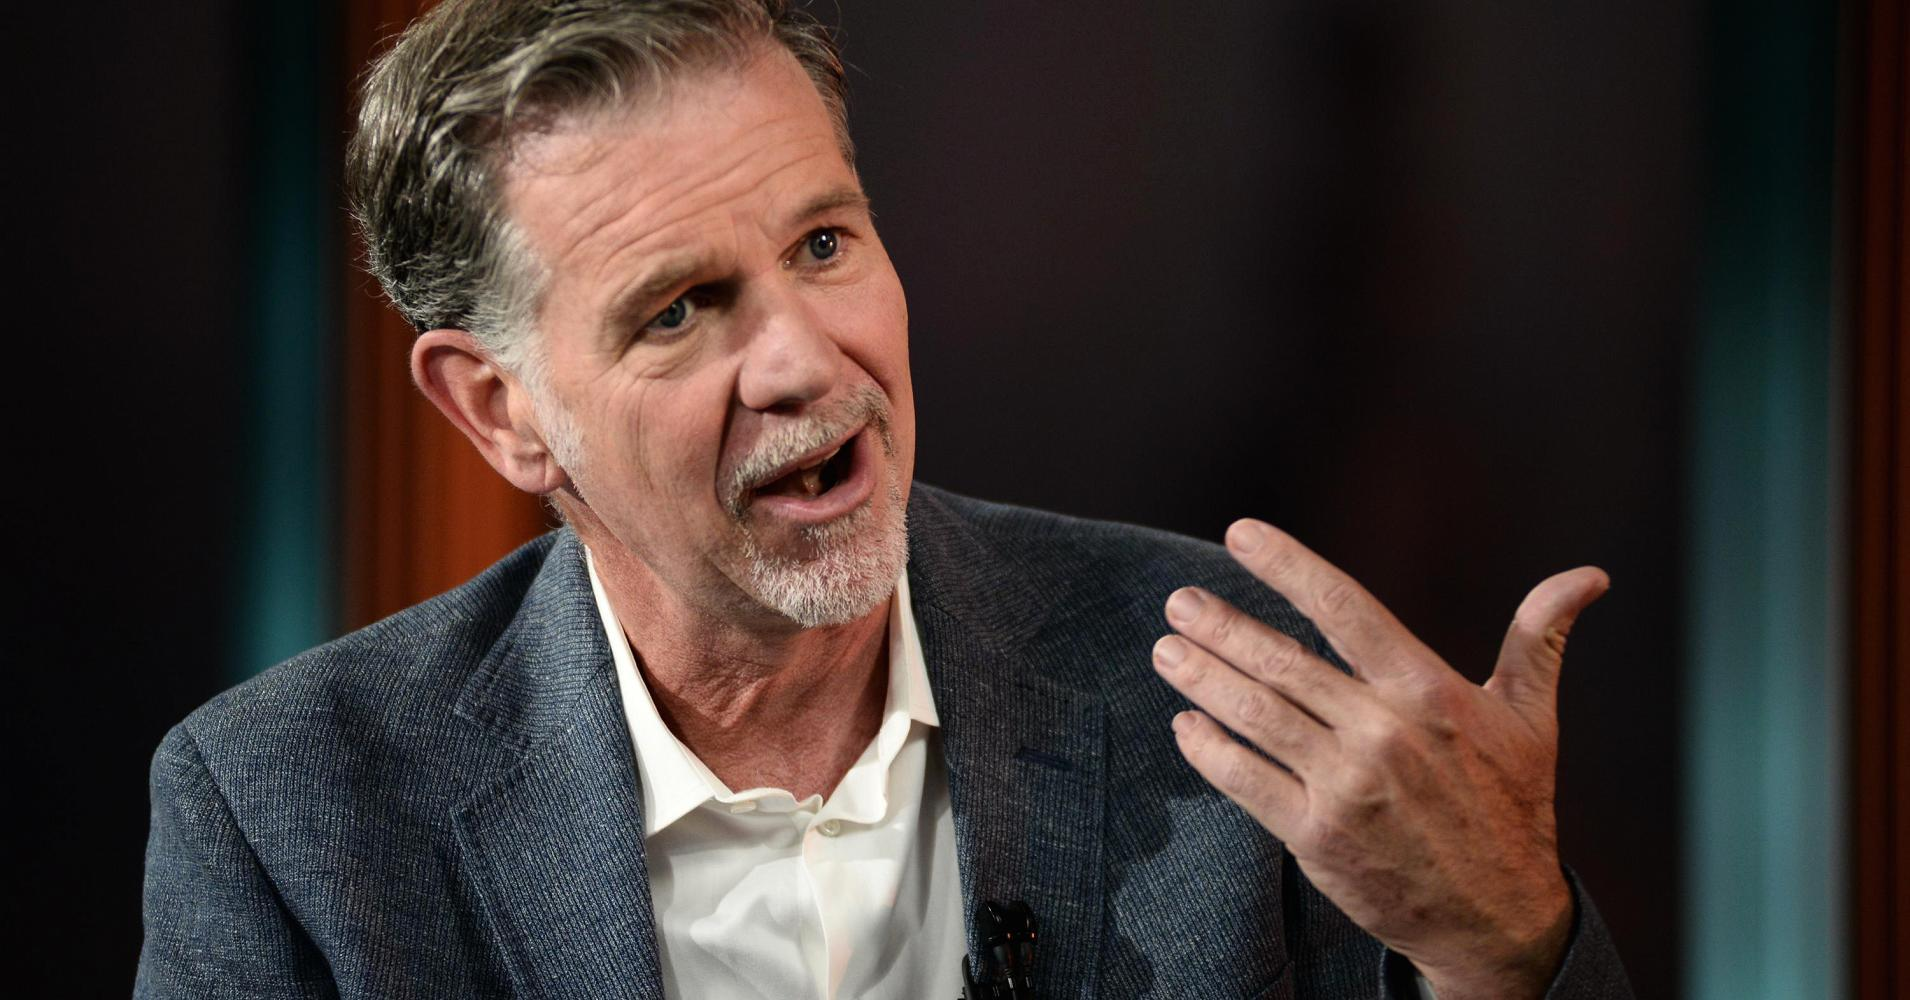 Netflix CEO says 'Trump would destroy much of what is great about America'